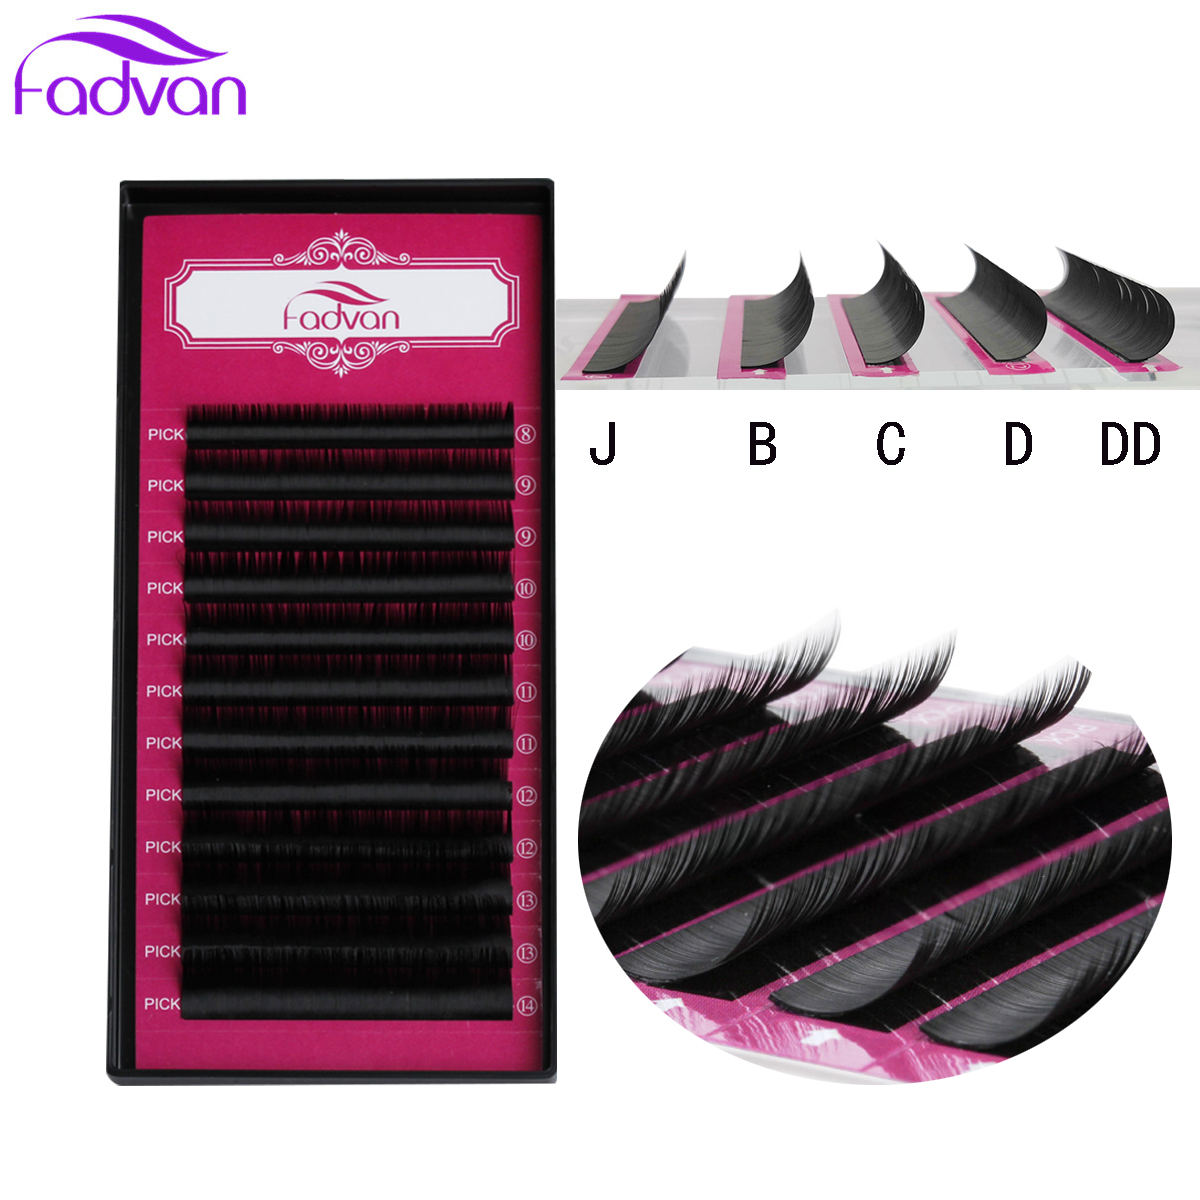 12Lines/Tray JB/C/D/DD Curl Eyelash Extension All Length Silk Volume Eye Lashes Makeup Natural Lashes Artificial False Eyelashes